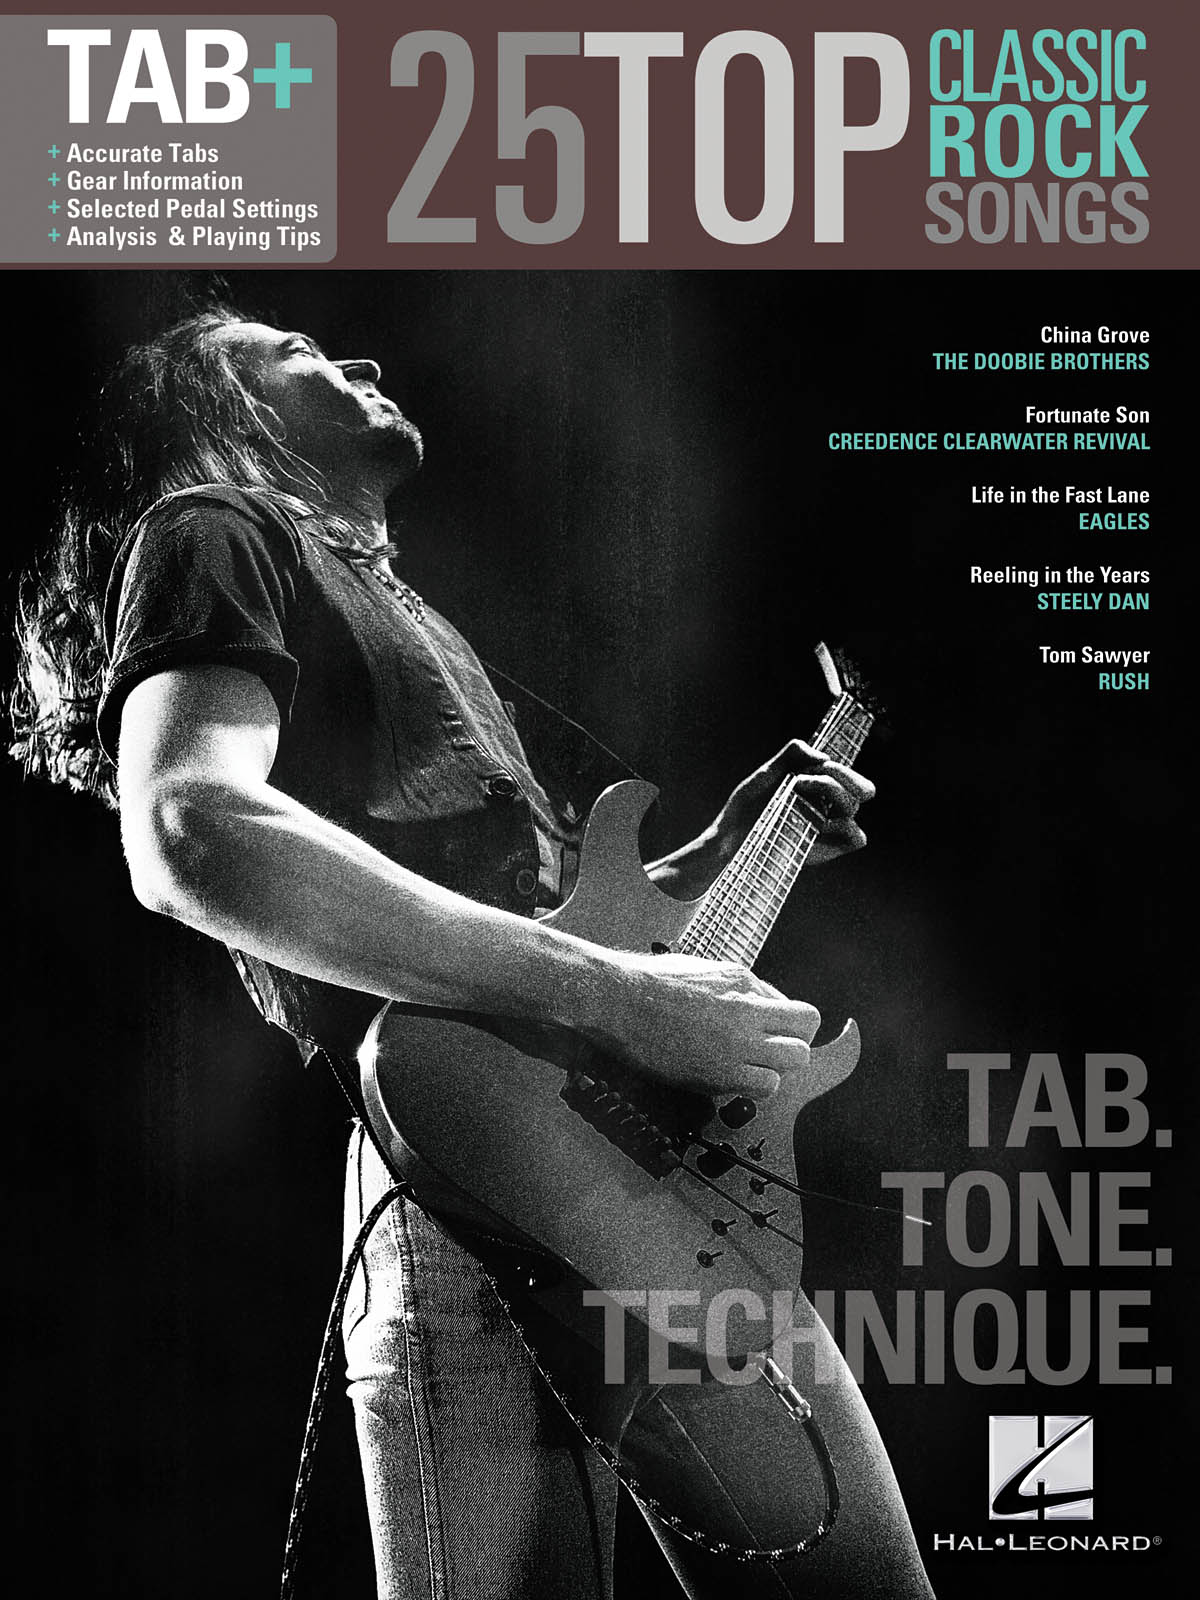 25 Top Classic Rock Songs - Tab. Tone. Technique.: Guitar Solo: Mixed Songbook